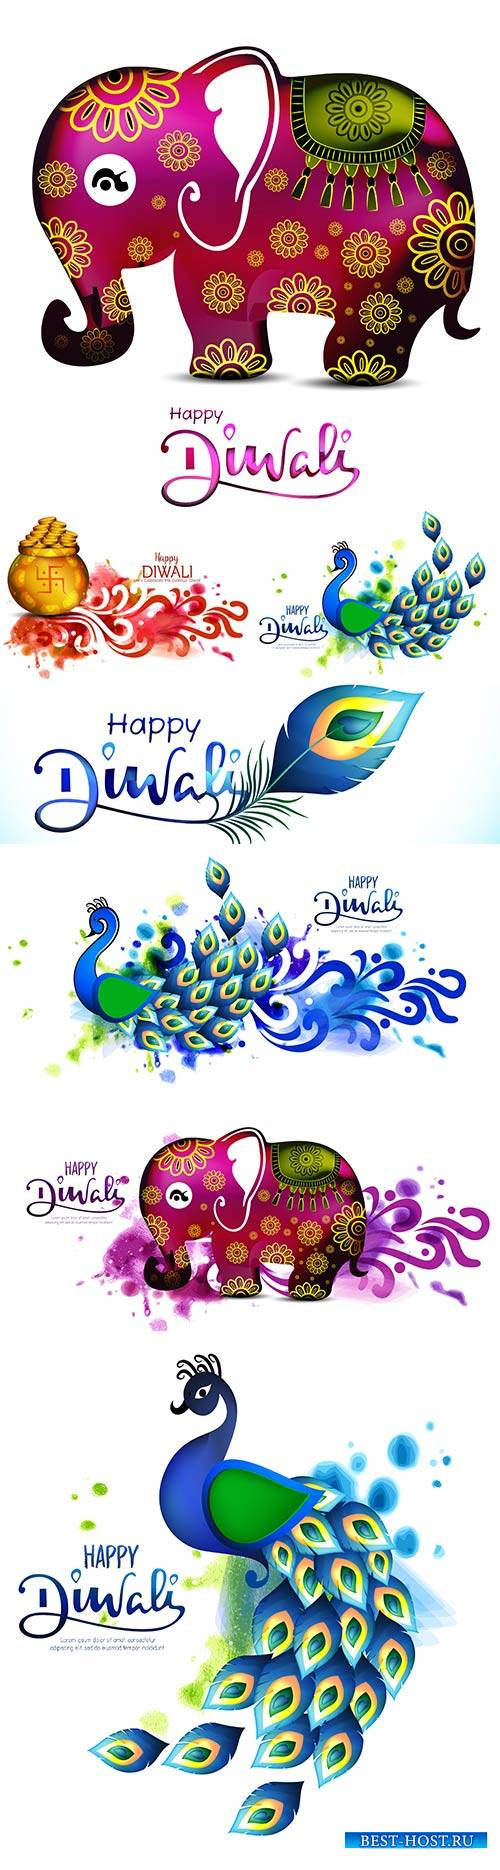 Diwali festival holiday design with peacock with beautiful elephant